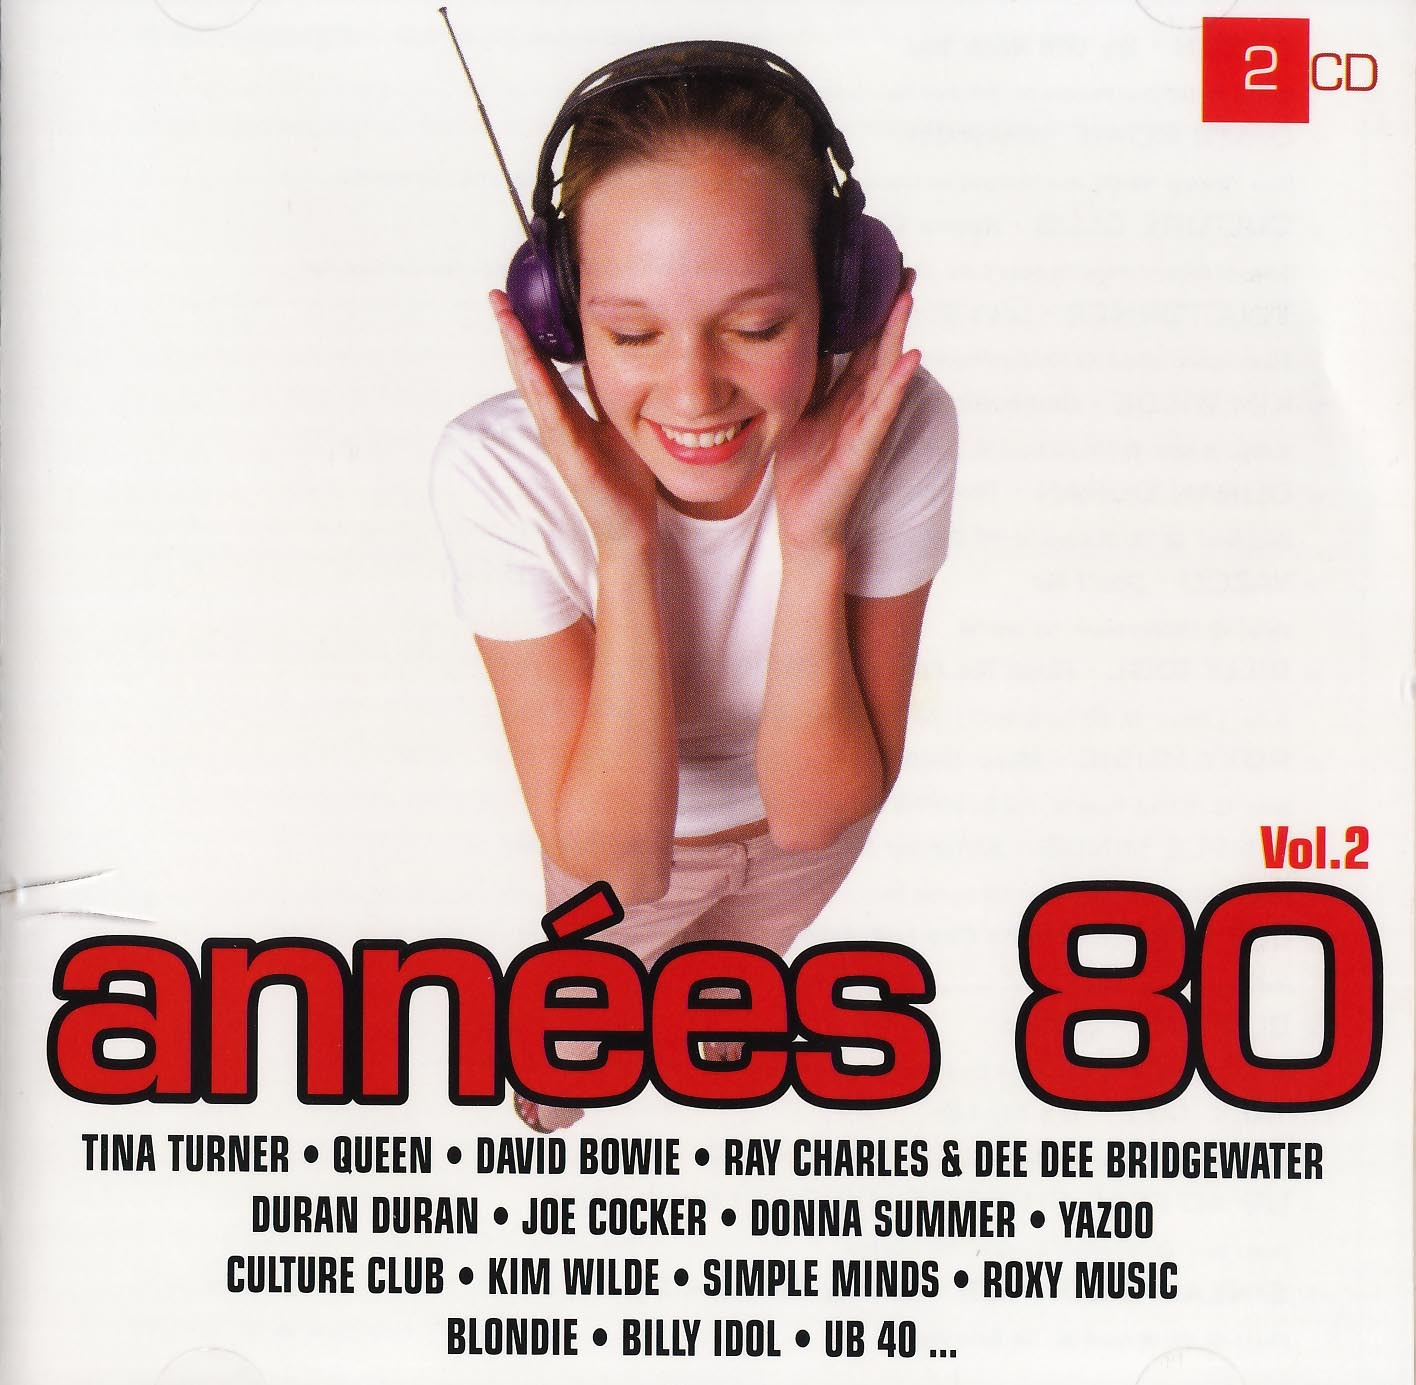 ANNEES 80 VOL2 - 2 CD-COLLECTION TWOGETHER